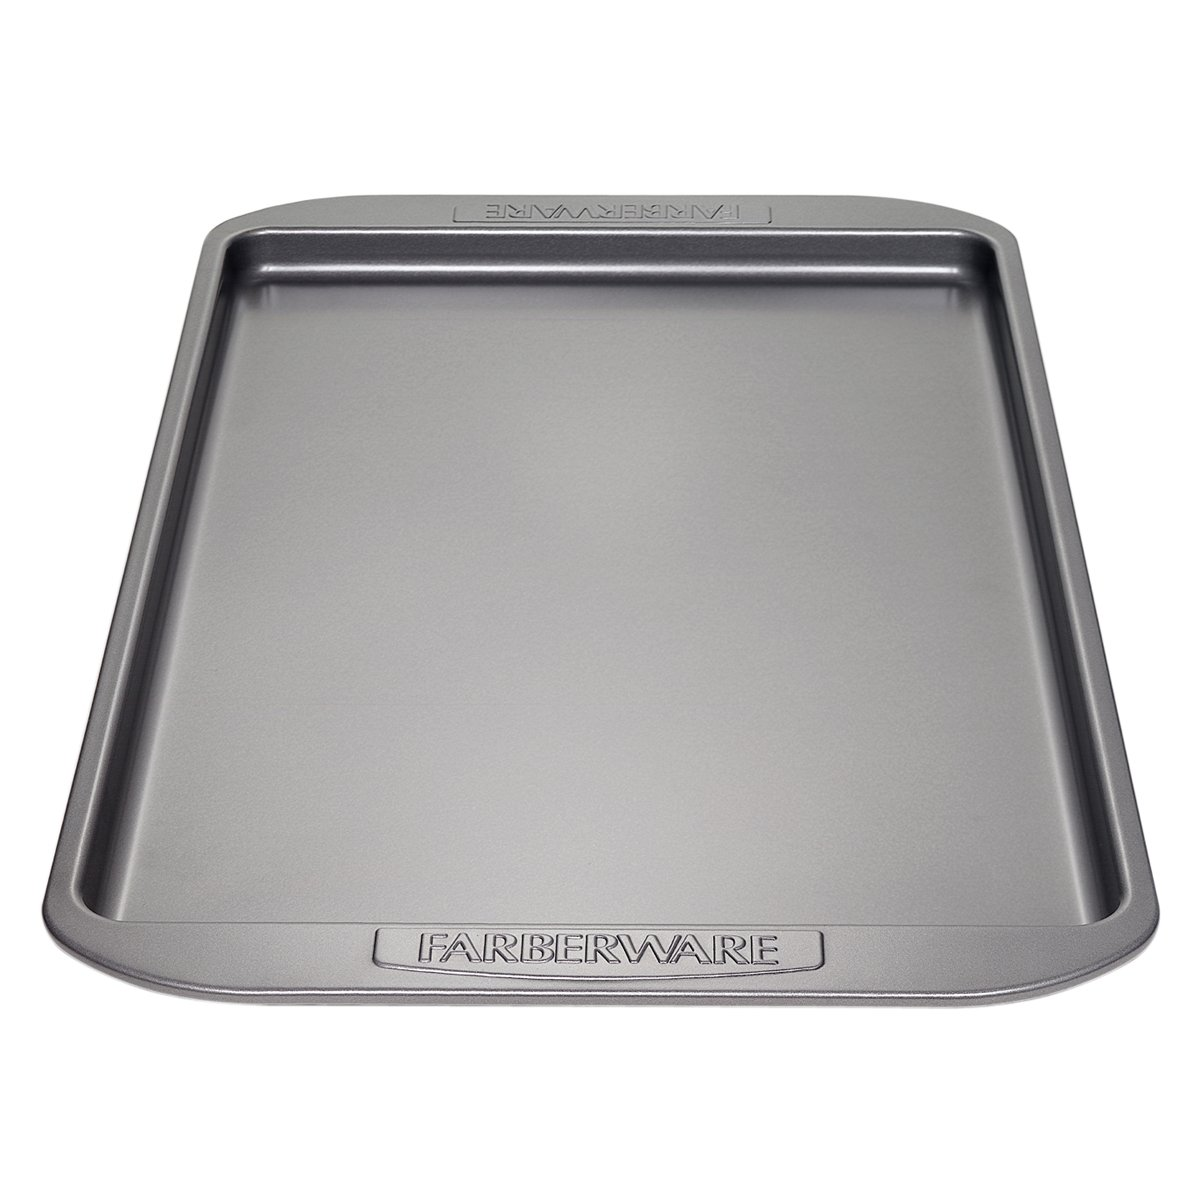 Farberware Non-stick Cookie Pan Review